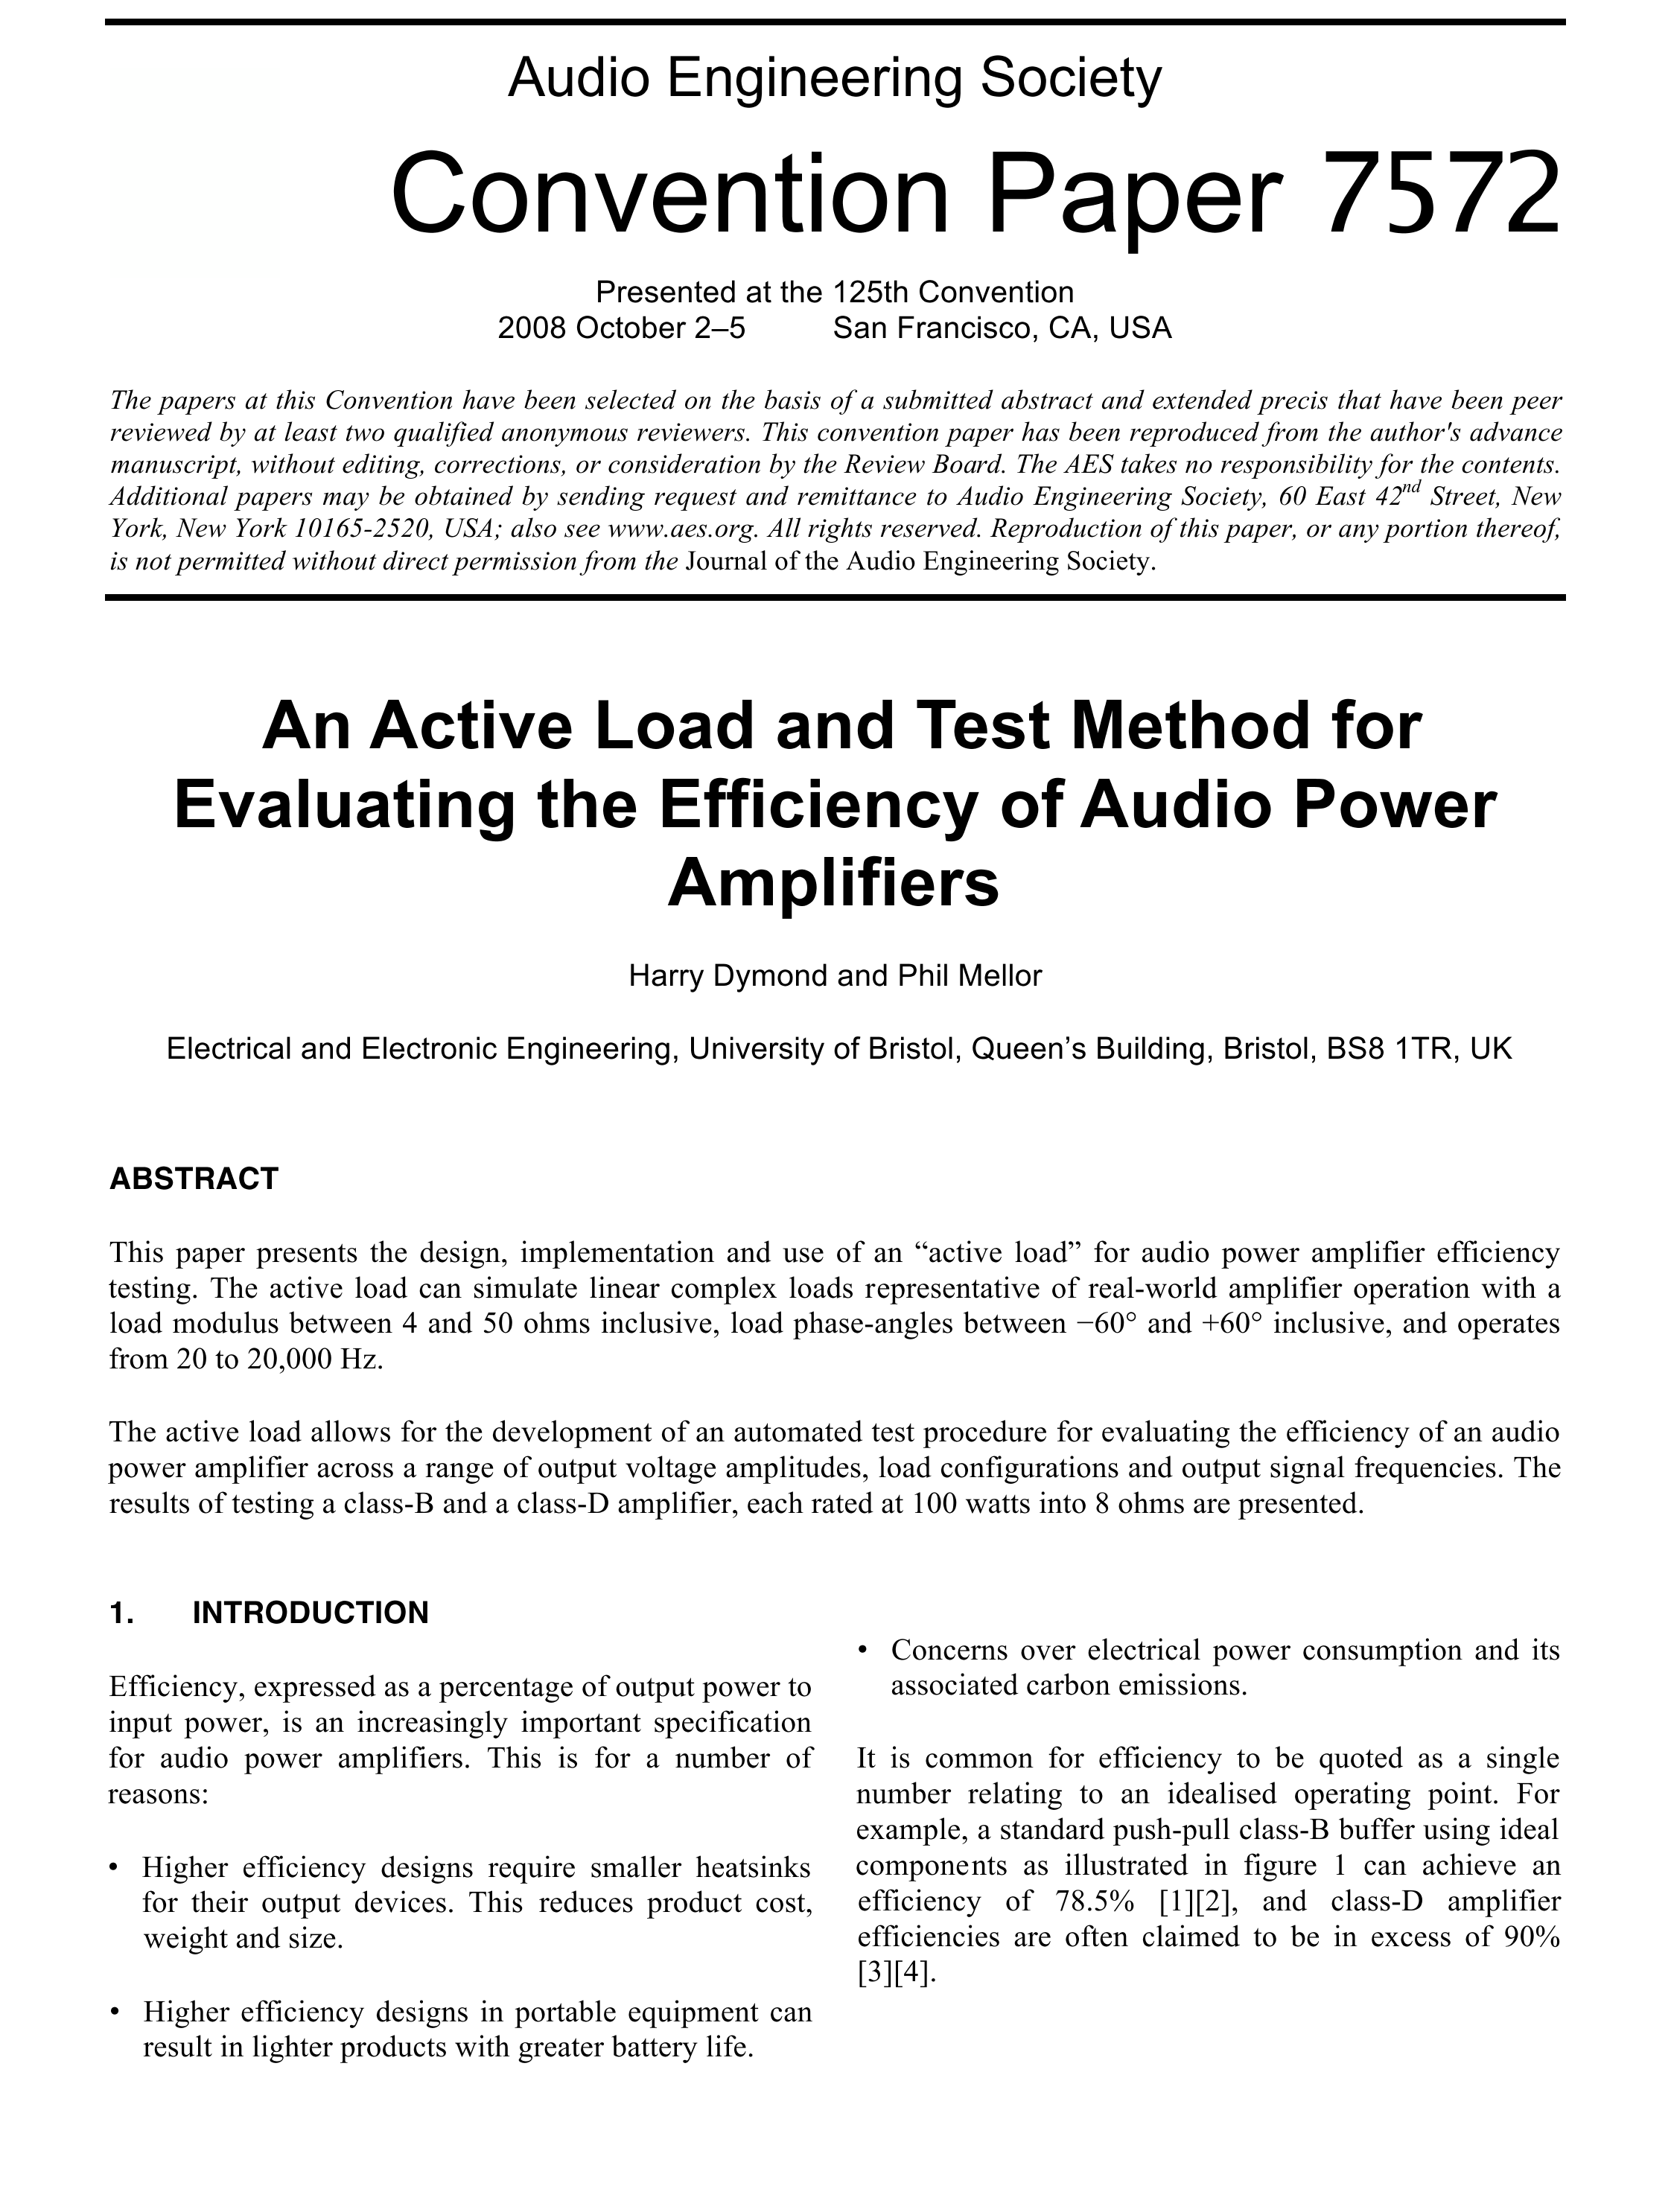 Aes E Library An Active Load And Test Method For Evaluating The 25 Watt Mono Classd Audio Power Amplifier Circuit Efficiency Of Amplifiers